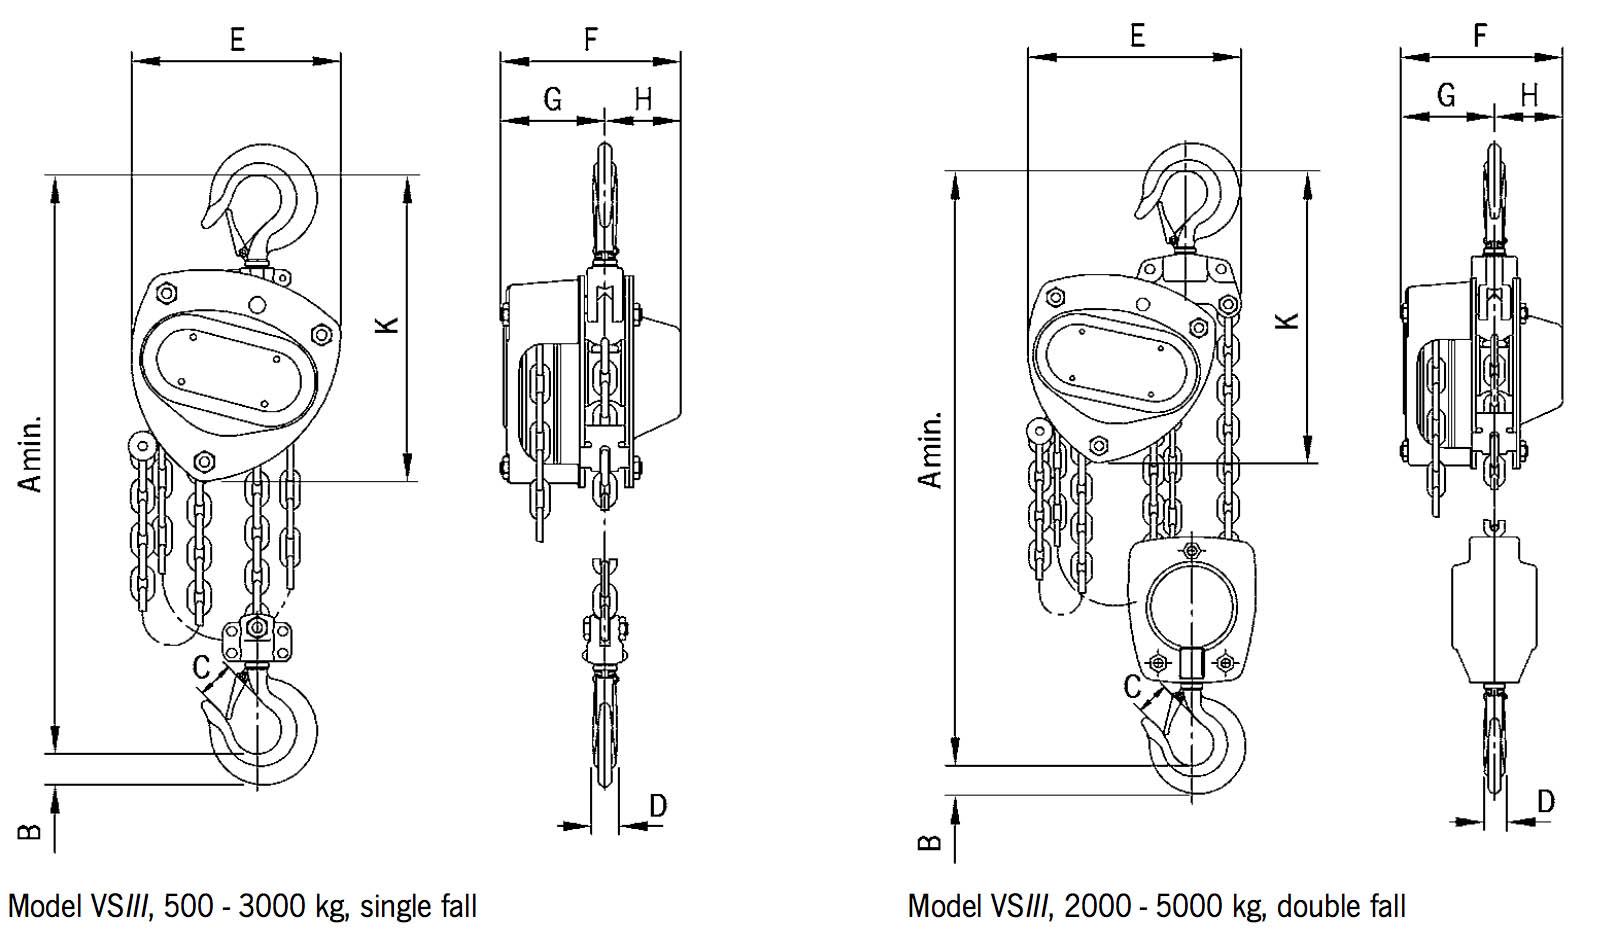 Warn Winch Wiring Diagram 120 Volt Motor Warn Winch